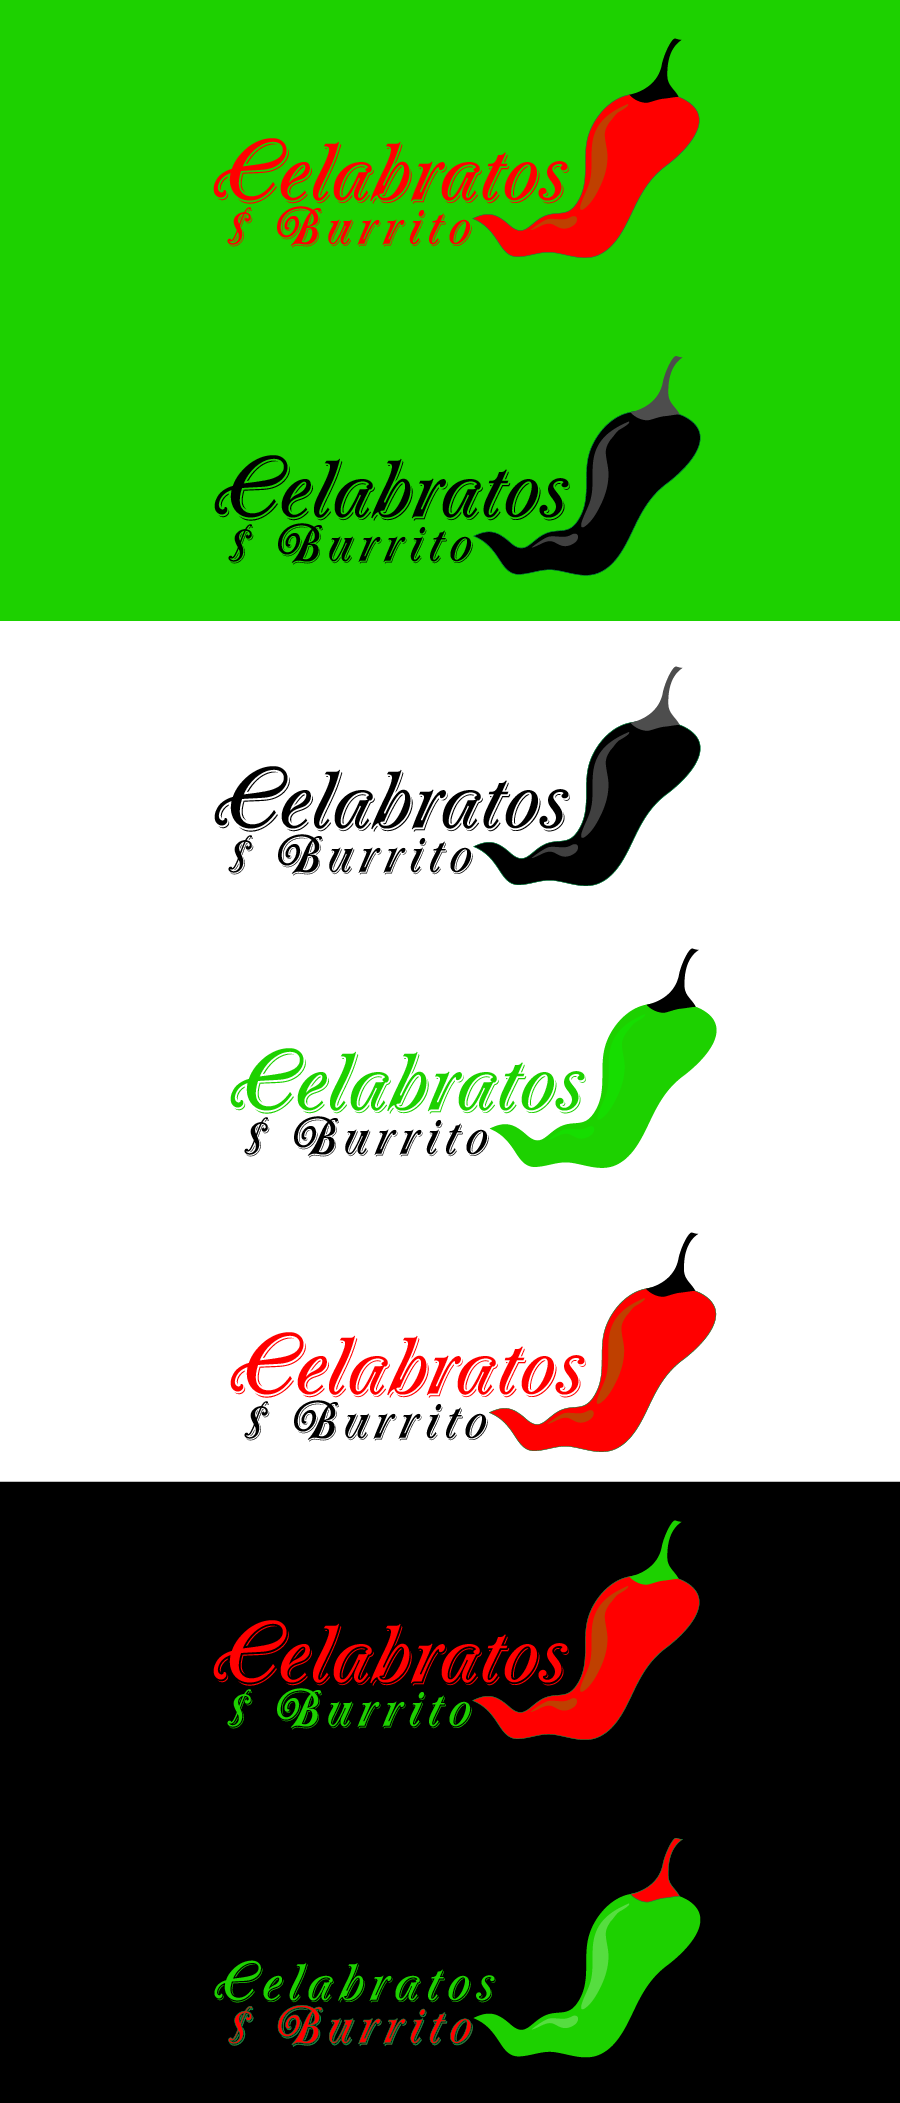 Logo Design by Private User - Entry No. 101 in the Logo Design Contest Imaginative Logo Design for Celabratos.